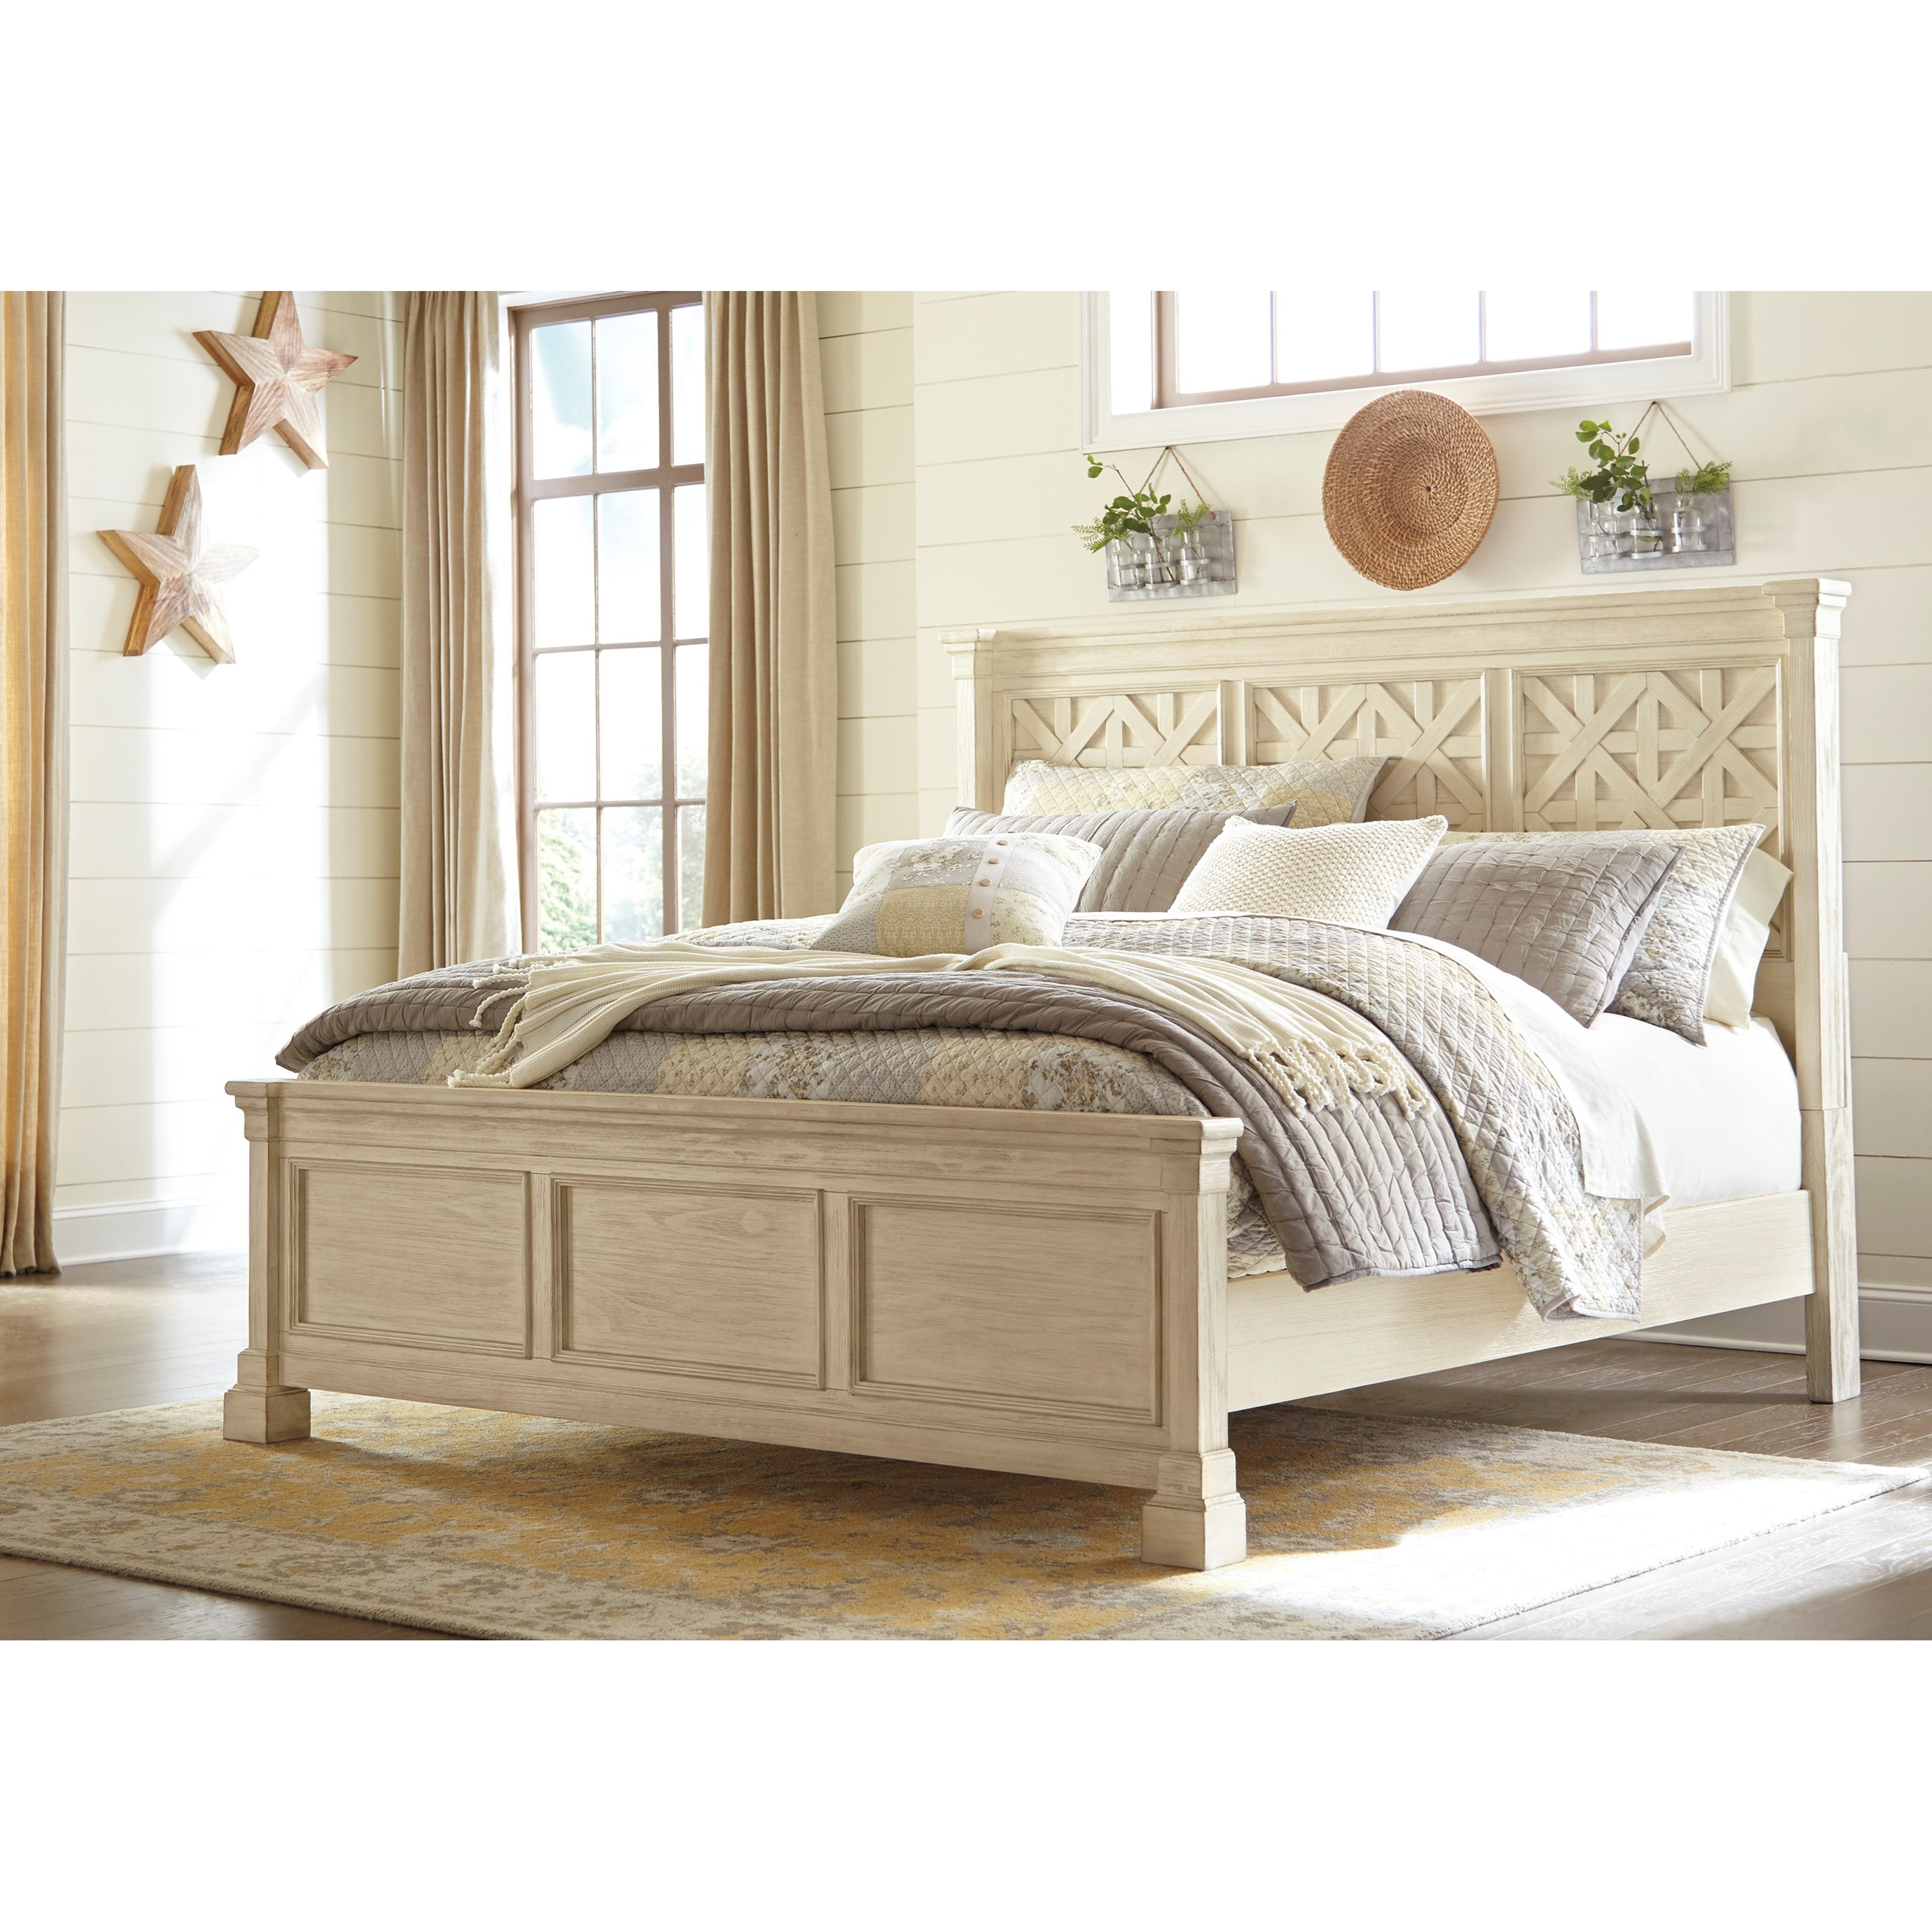 Signature design by ashley bolanburg queen panel bed with for Panel bed mattress